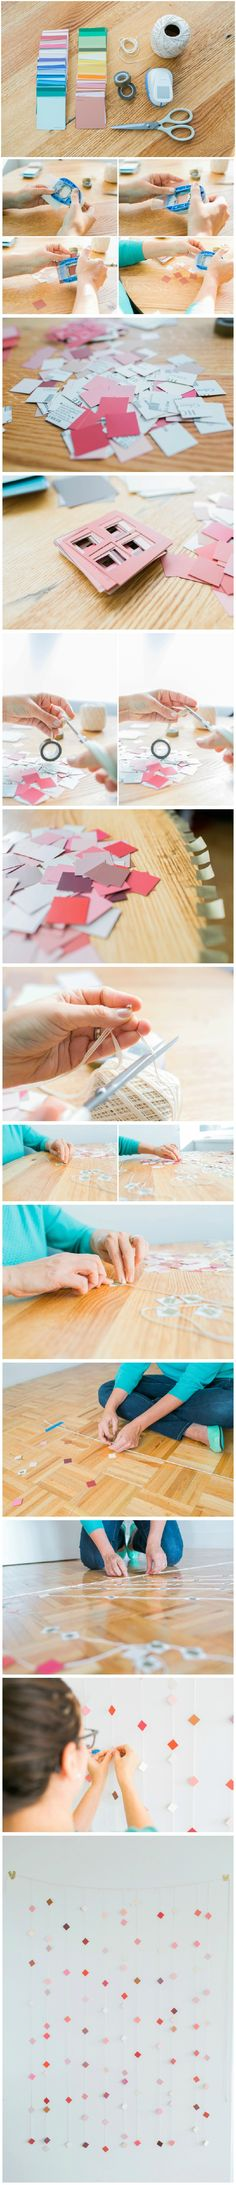 DIY Tutorial: Make a Geometric Paper Backdrop - perfect affordable wedding or event decor